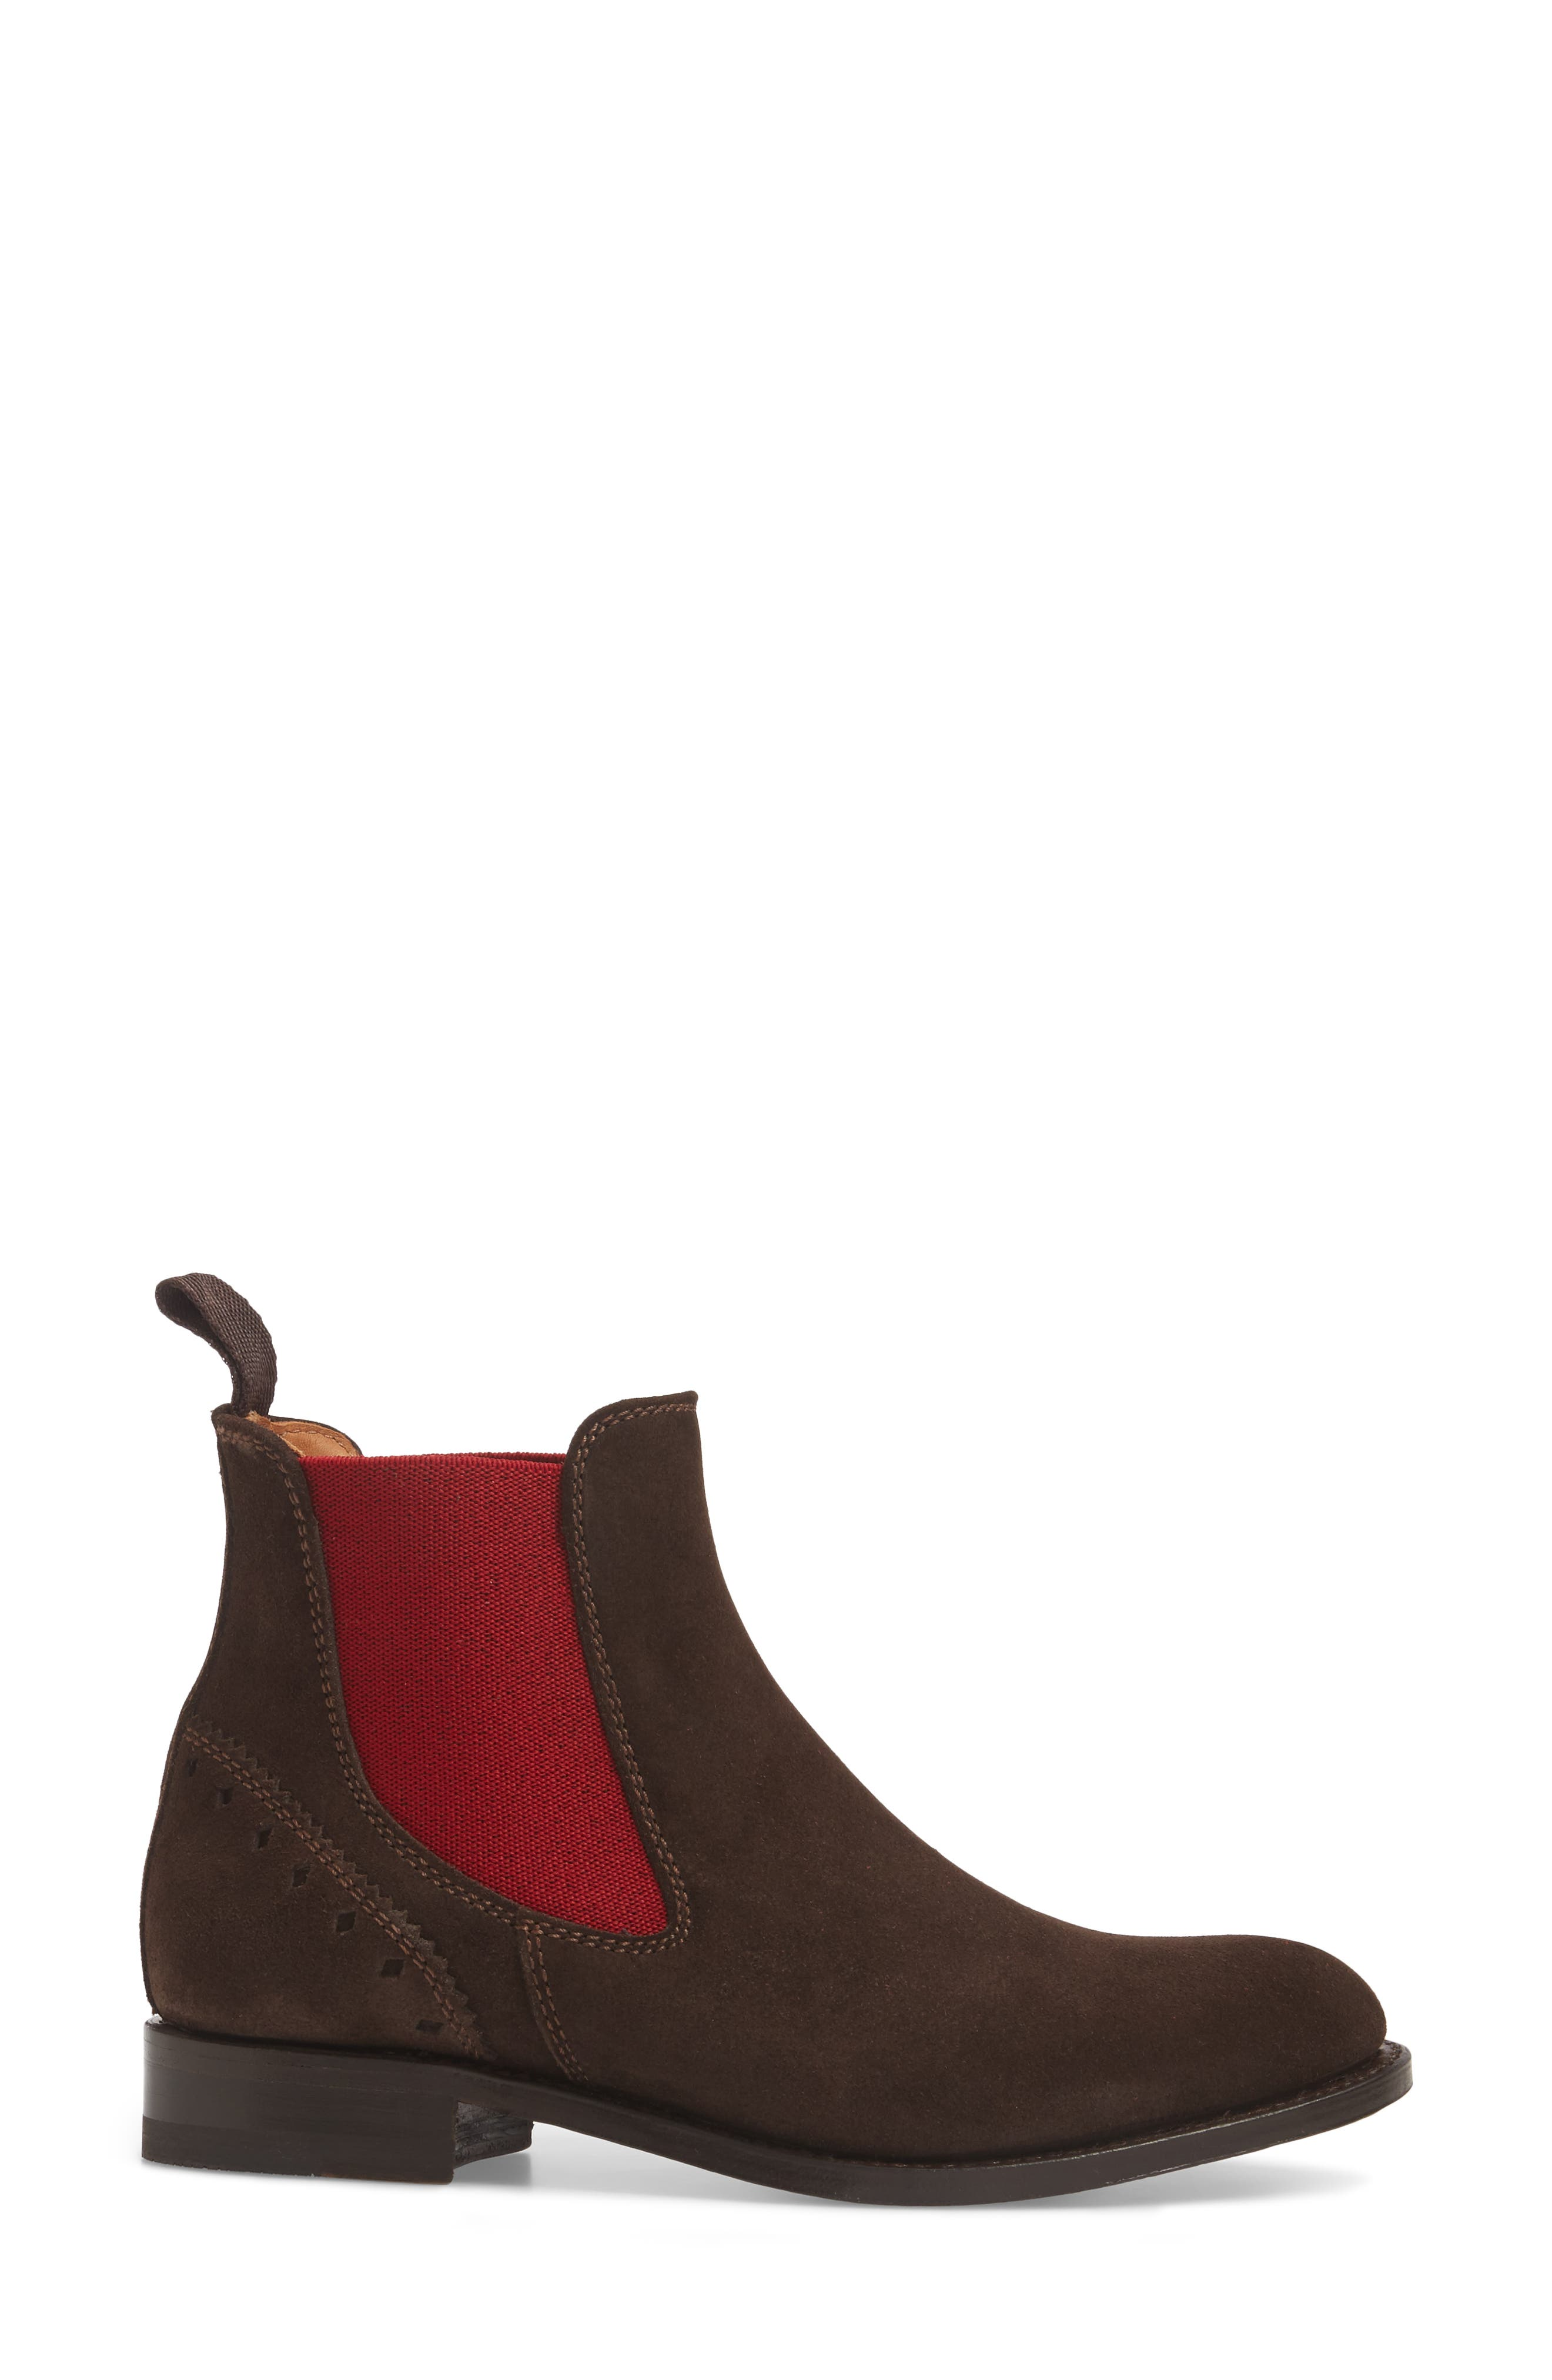 Benissa Lux Chelsea Boot,                             Alternate thumbnail 3, color,                             Brown Suede